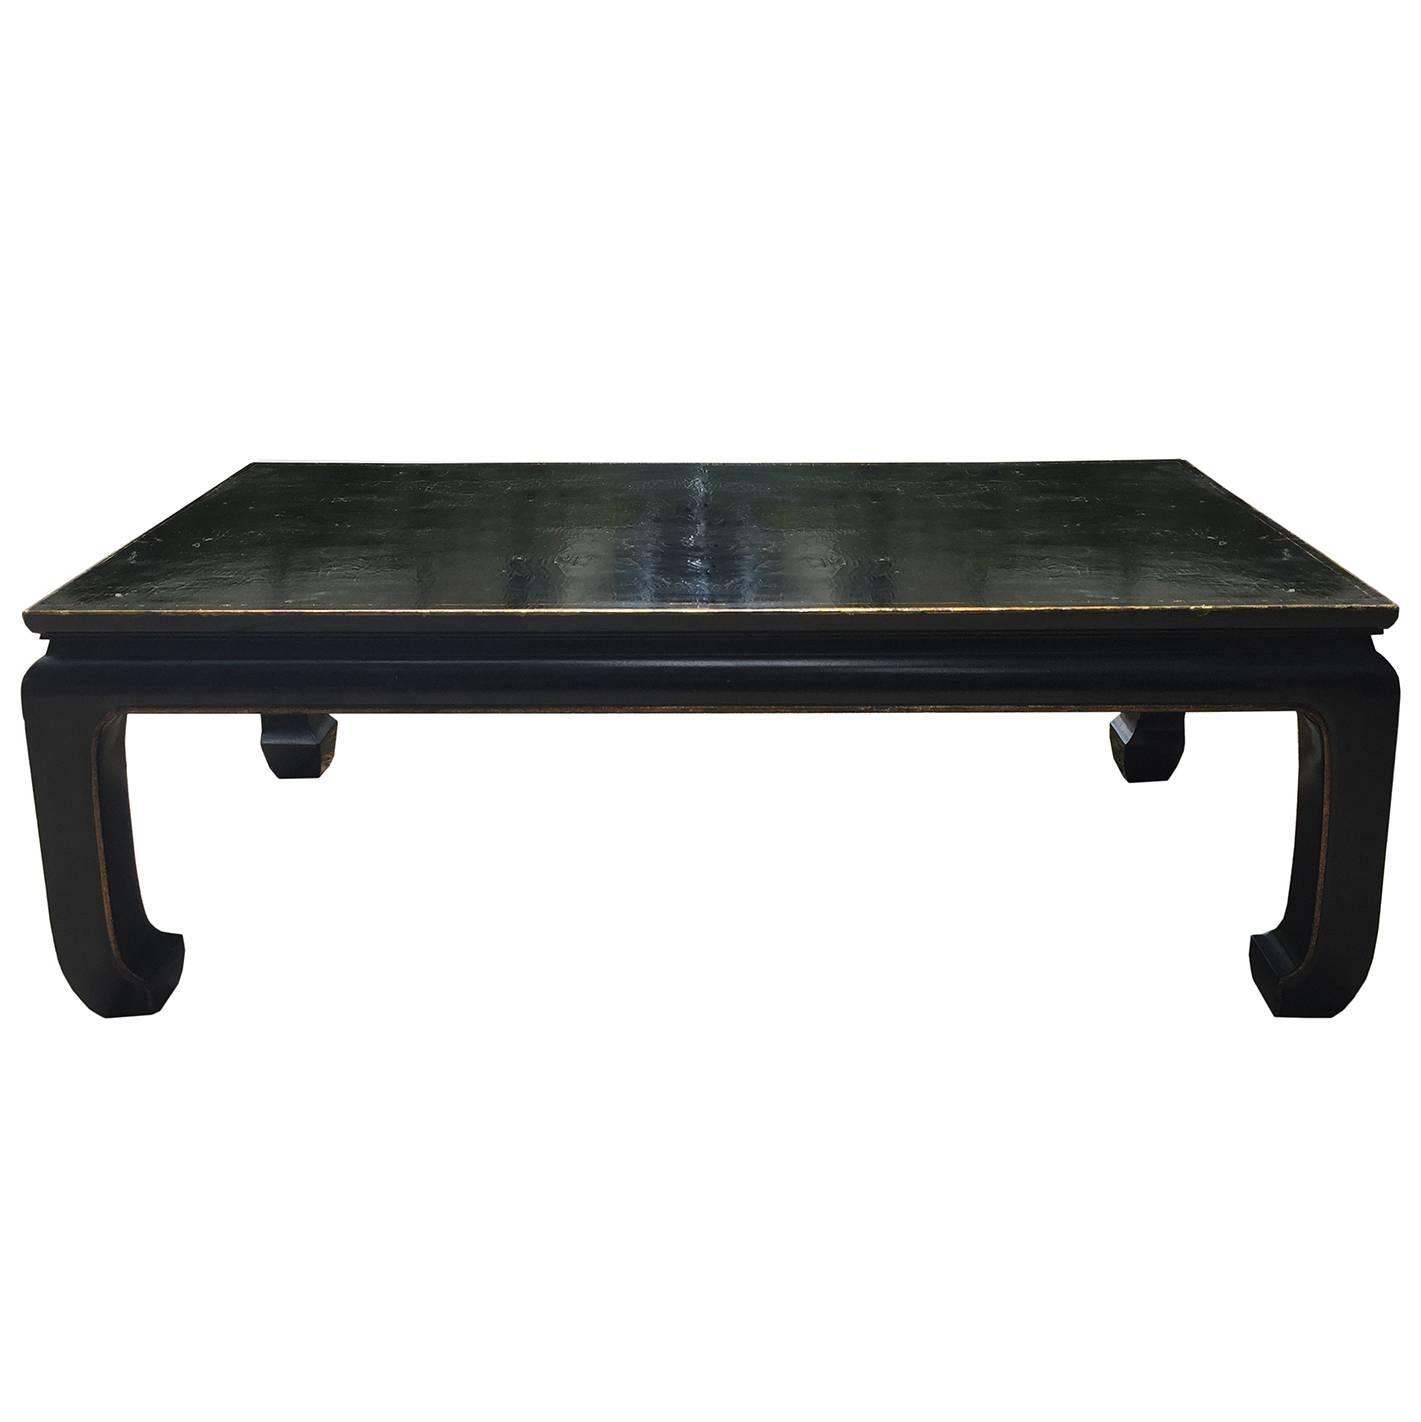 20th century superior quality black lacquered coffee table